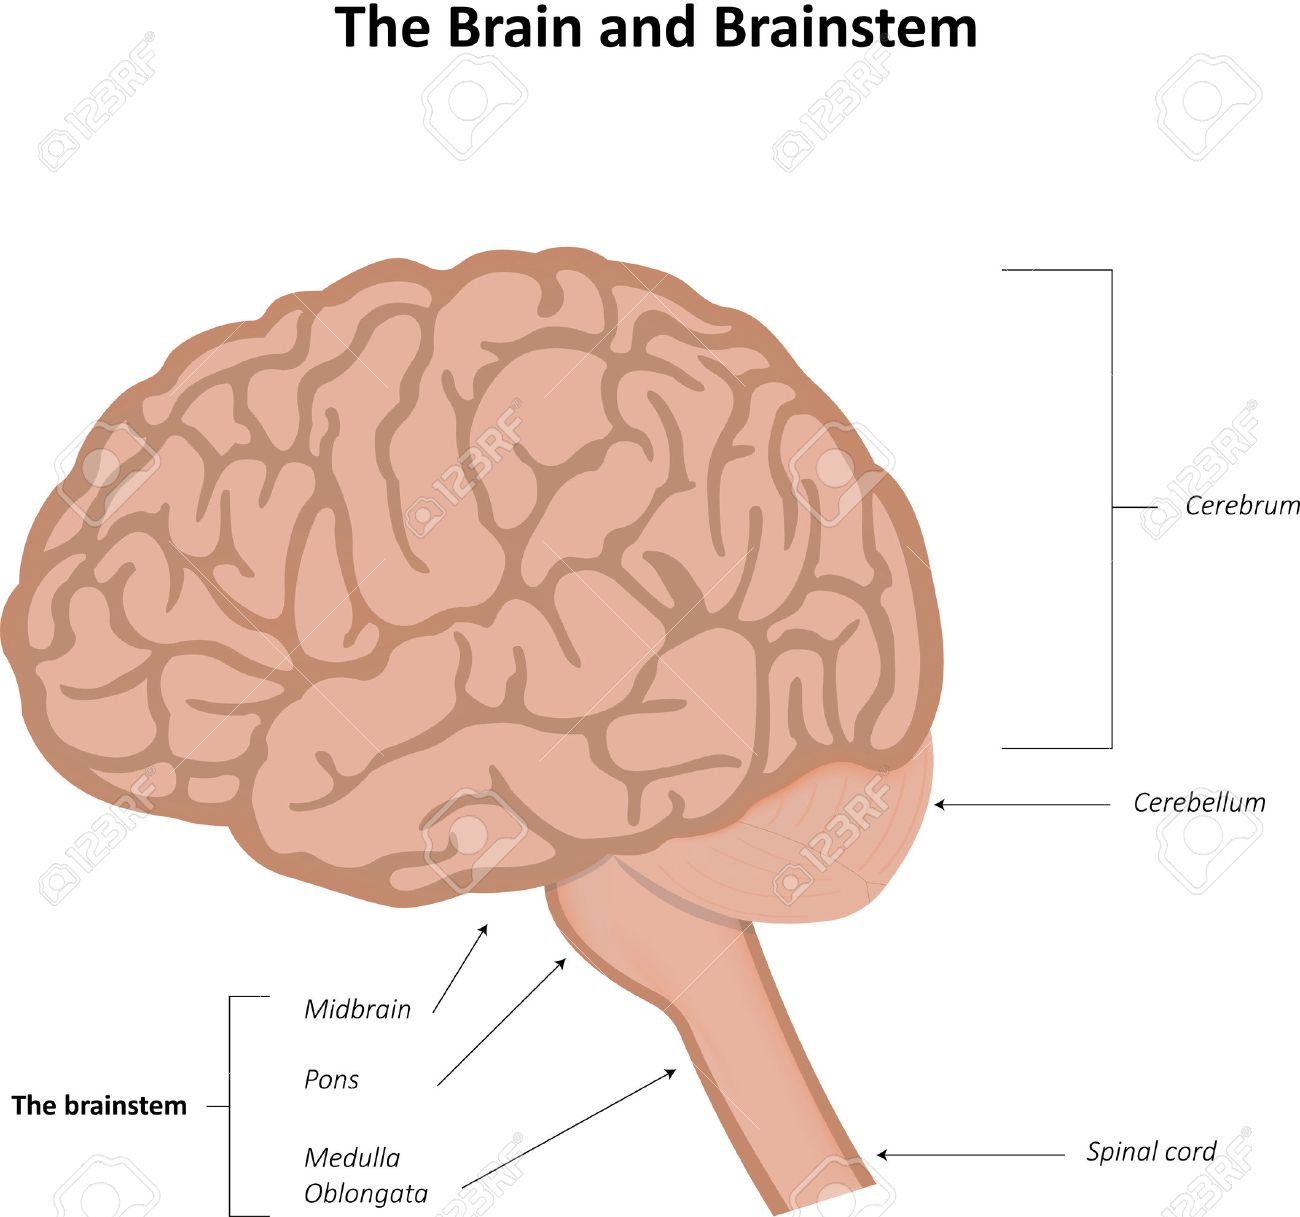 Brain and brainstem diagram stock photo picture and royalty free brain and brainstem diagram stock photo 41321871 ccuart Gallery